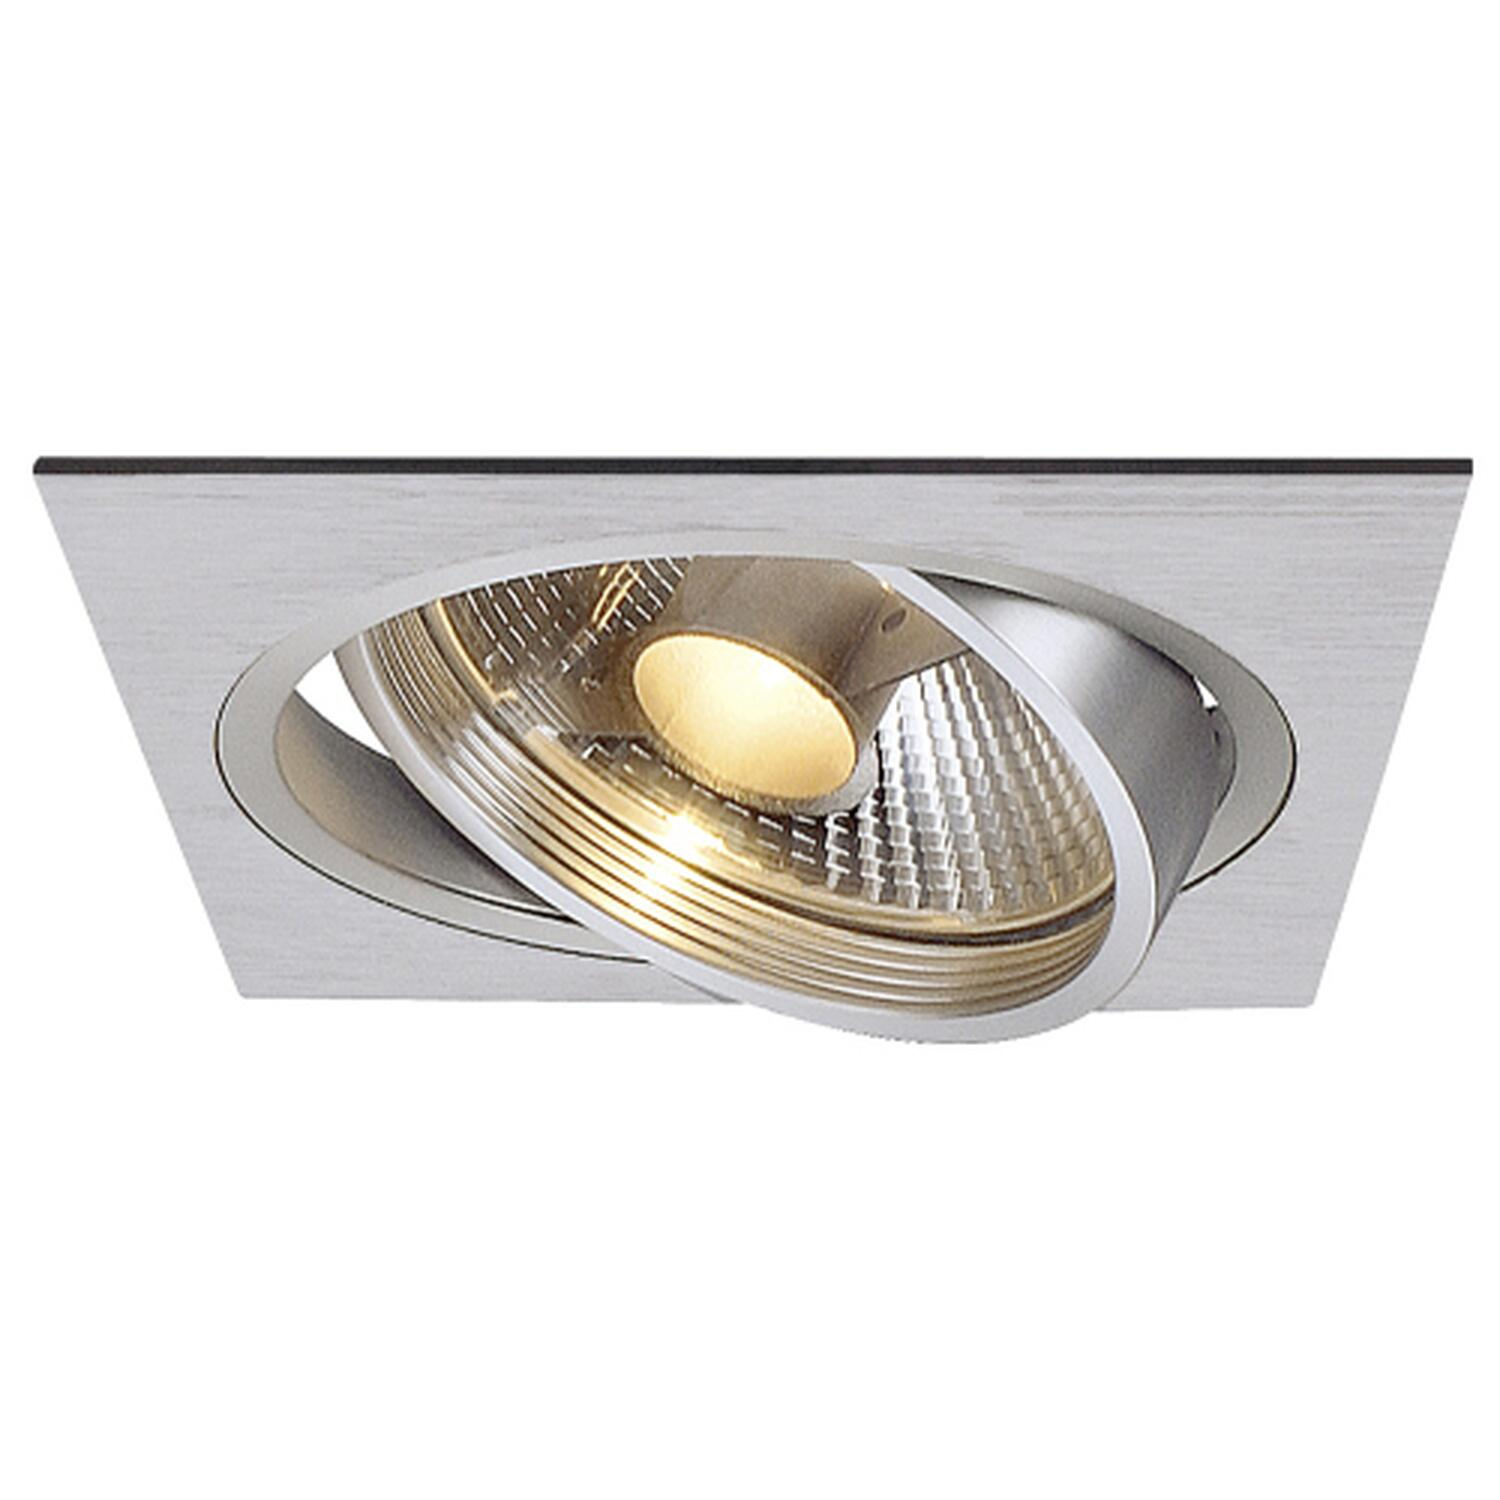 NEW TRIA I ES111 Downlight, eckig, alu brushed, GU10, max. 75W, inkl. Blattfedern